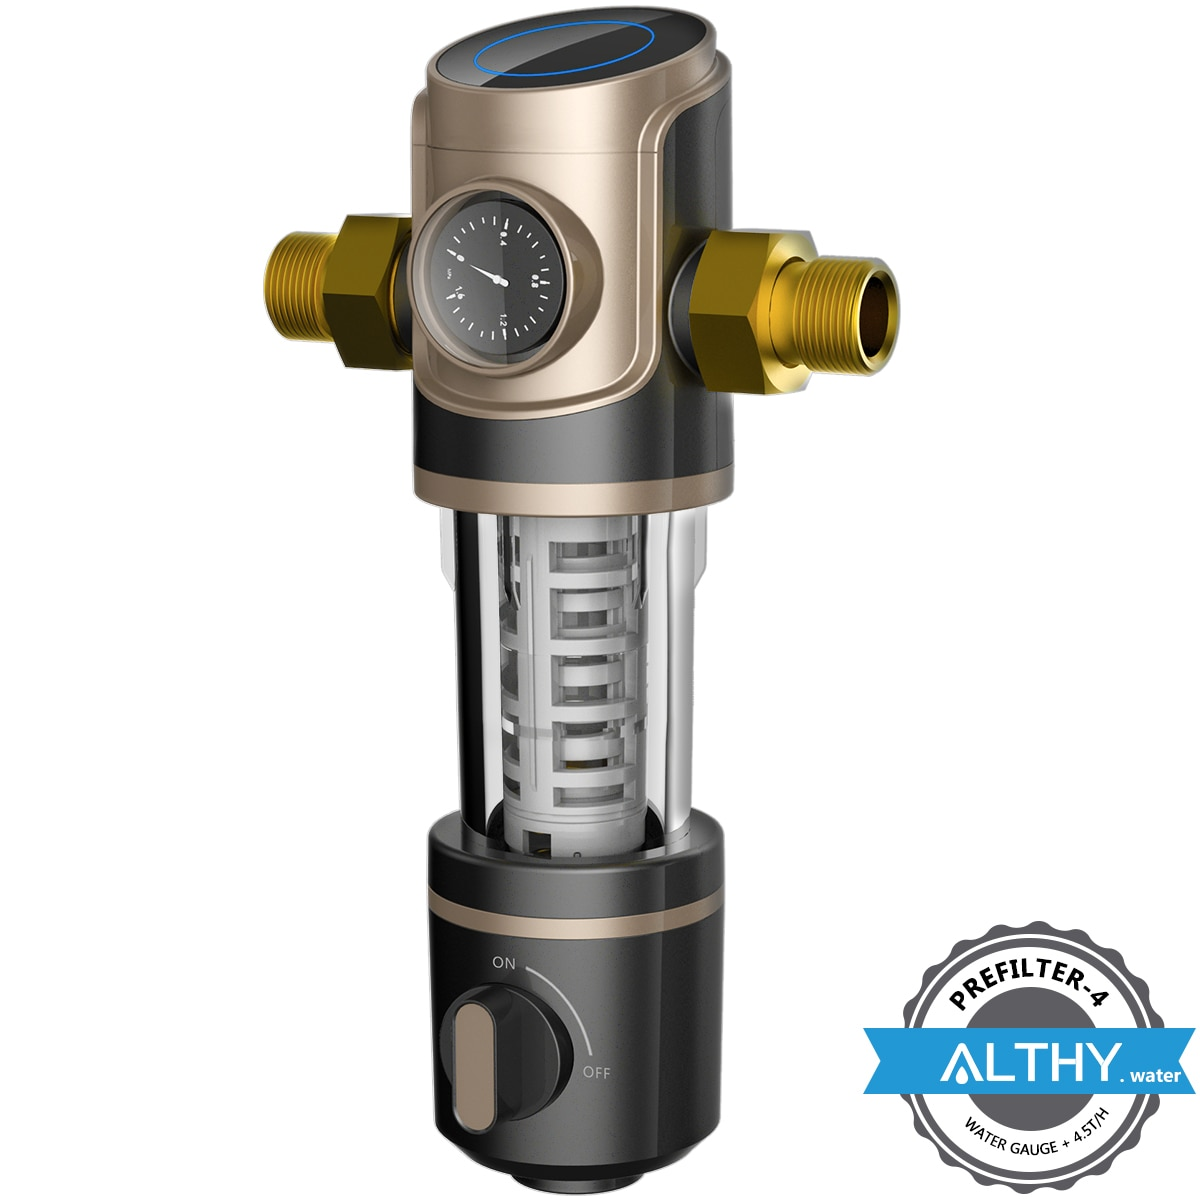 ALTHY Prefilter Central Whole House Pre filter Water Filter Purifier Siphon backwash 4.5T/h large flow + water Pressure Gauge